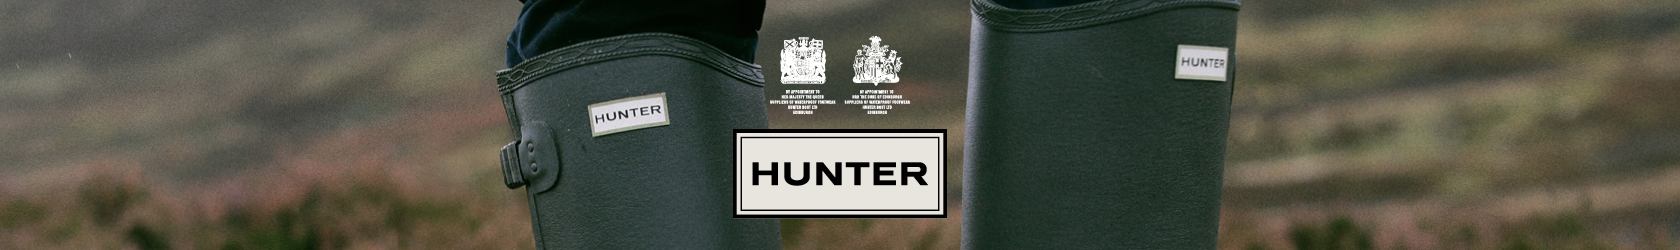 Green Hunter wellies with the Hunter logo in the middle of the image.